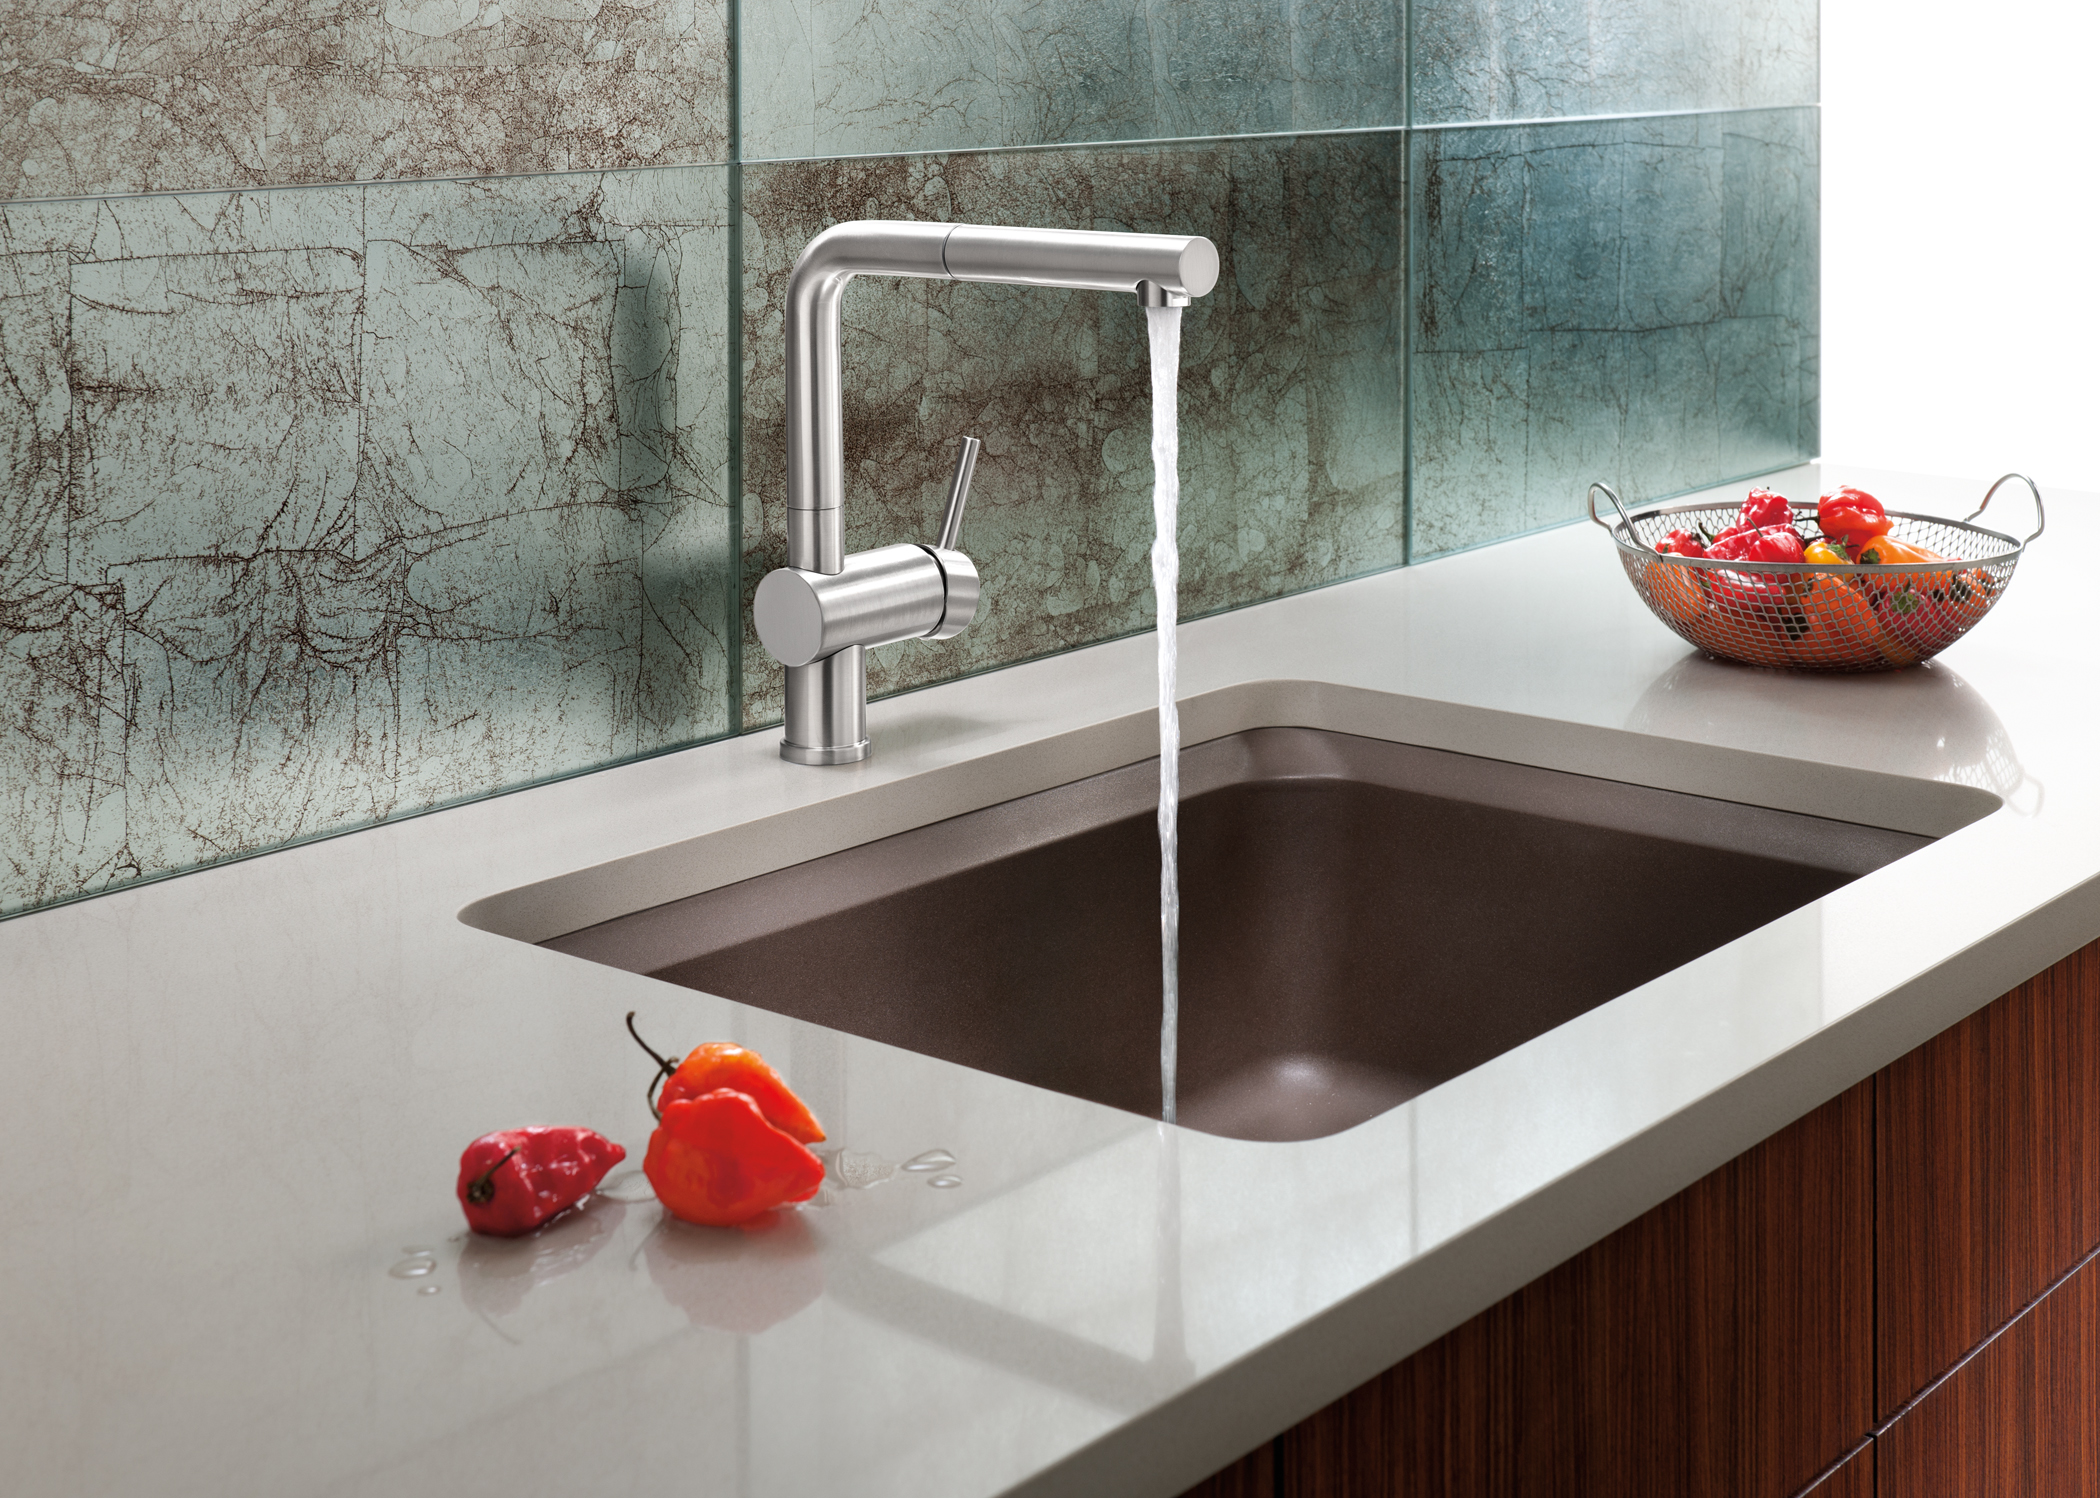 the new blanco silgranit ii vision designer kitchen sink offers